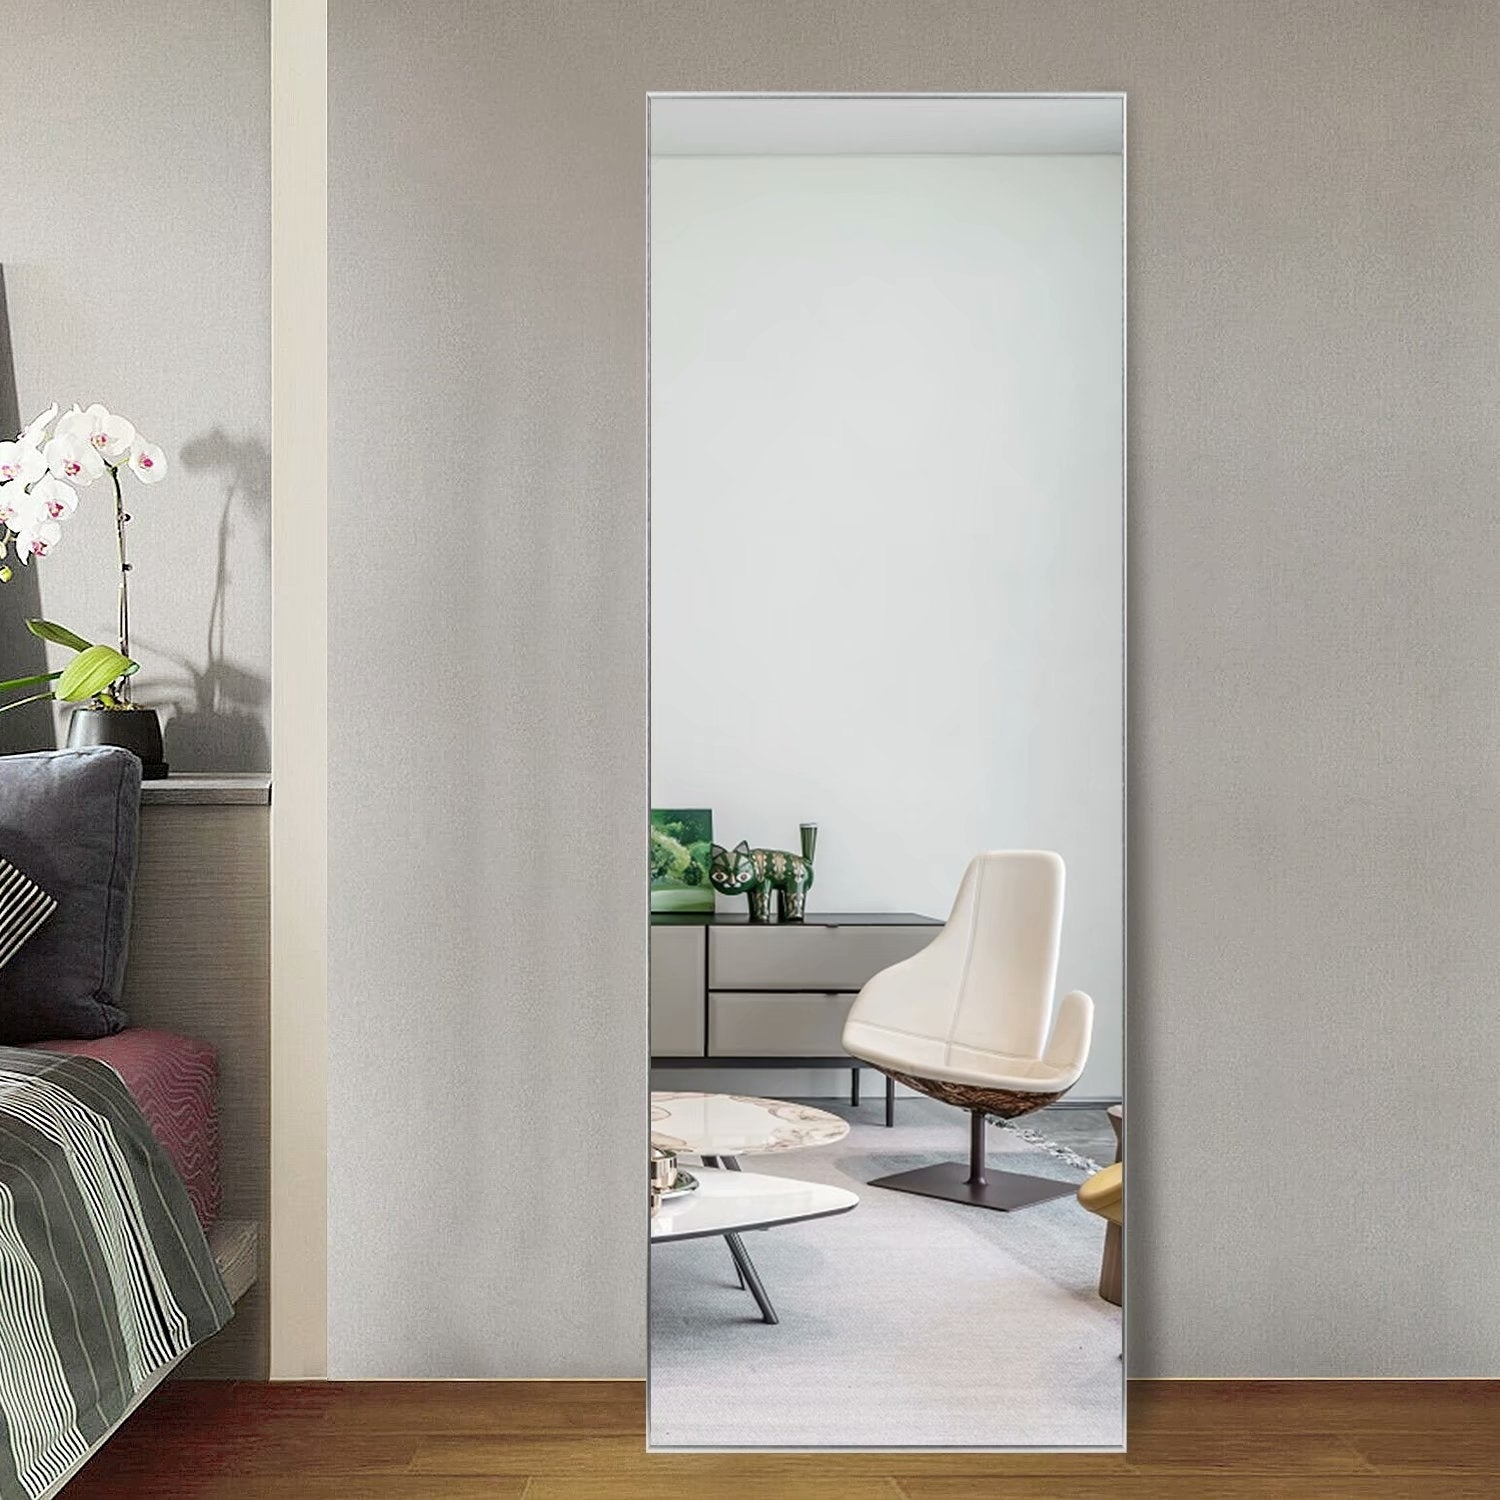 Rectangular Accent Metal Frame Full Length Wall Mounted Hanging Mirror 63 X18 Overstock 30579871